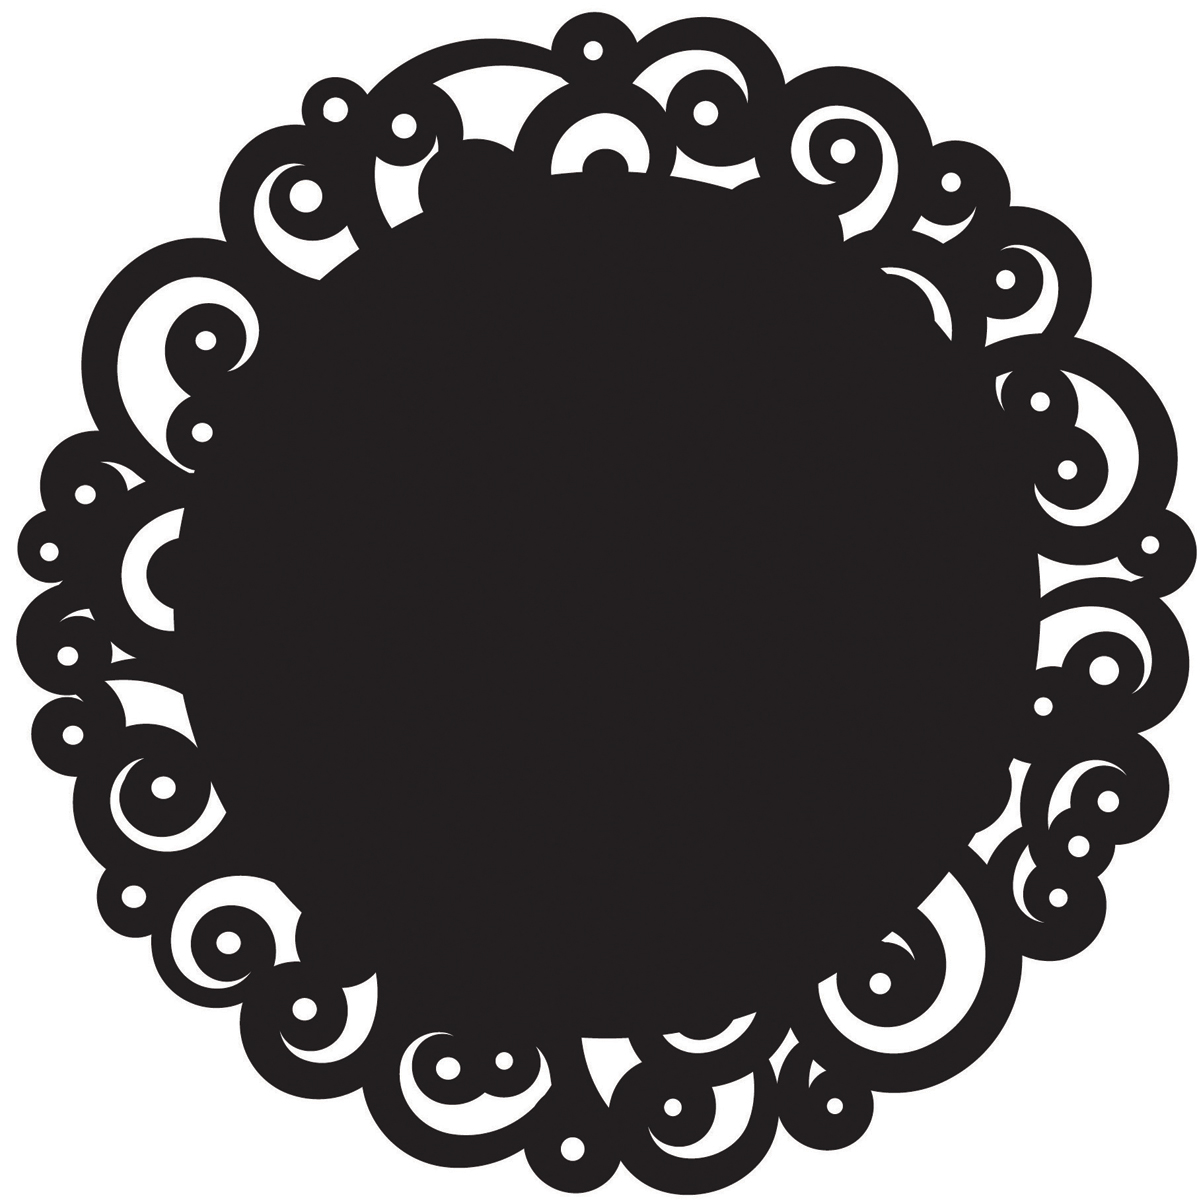 Clipart doilies picture black and white download Doily Clipart | Free download best Doily Clipart on ClipArtMag.com picture black and white download